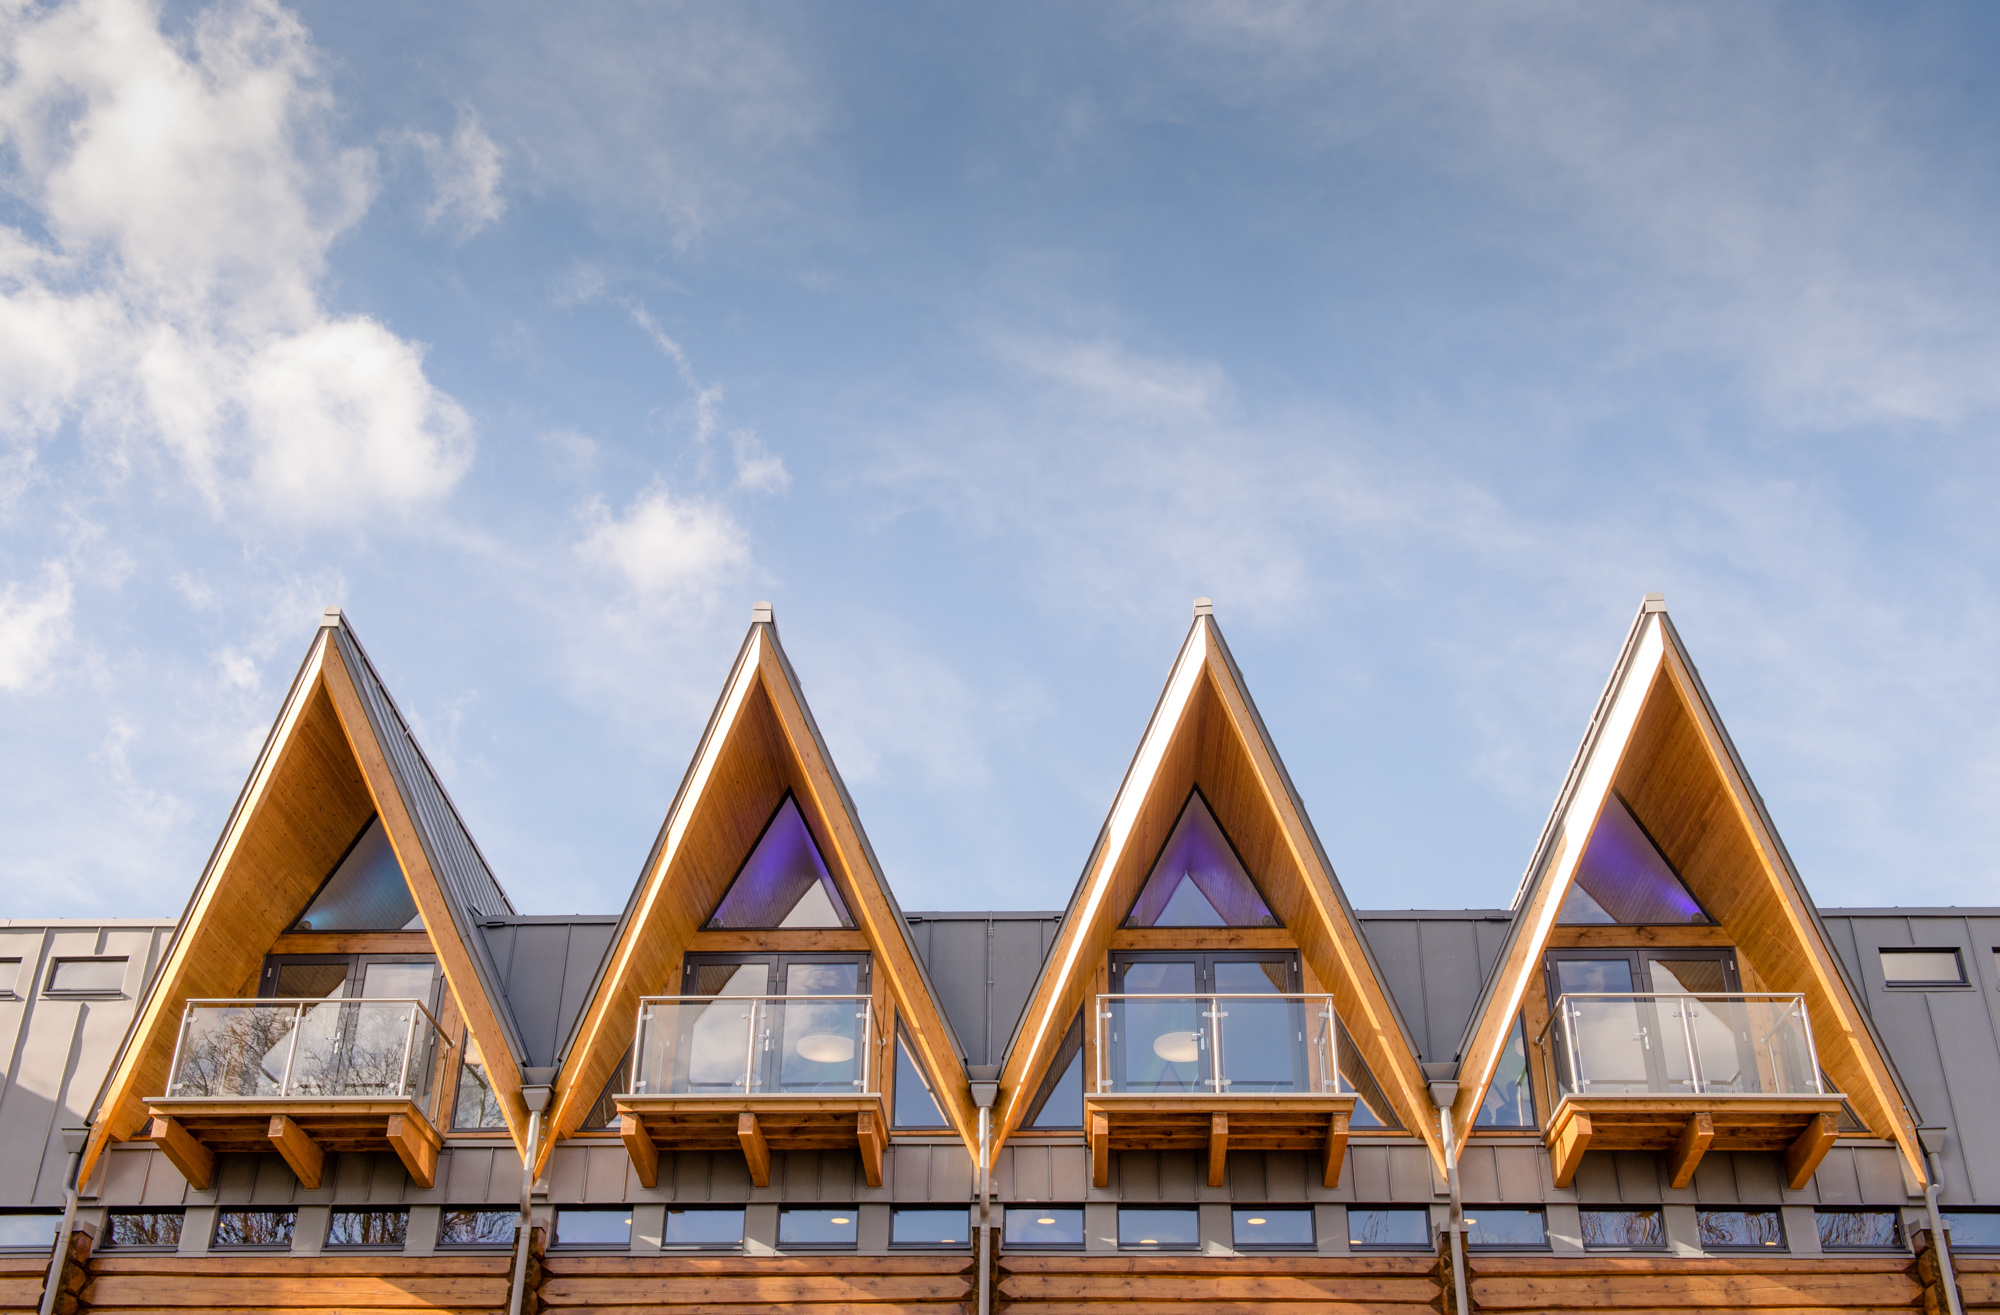 Riverside Clubhouse by Emission Zero architects, Richard Stonehouse architectural photographer